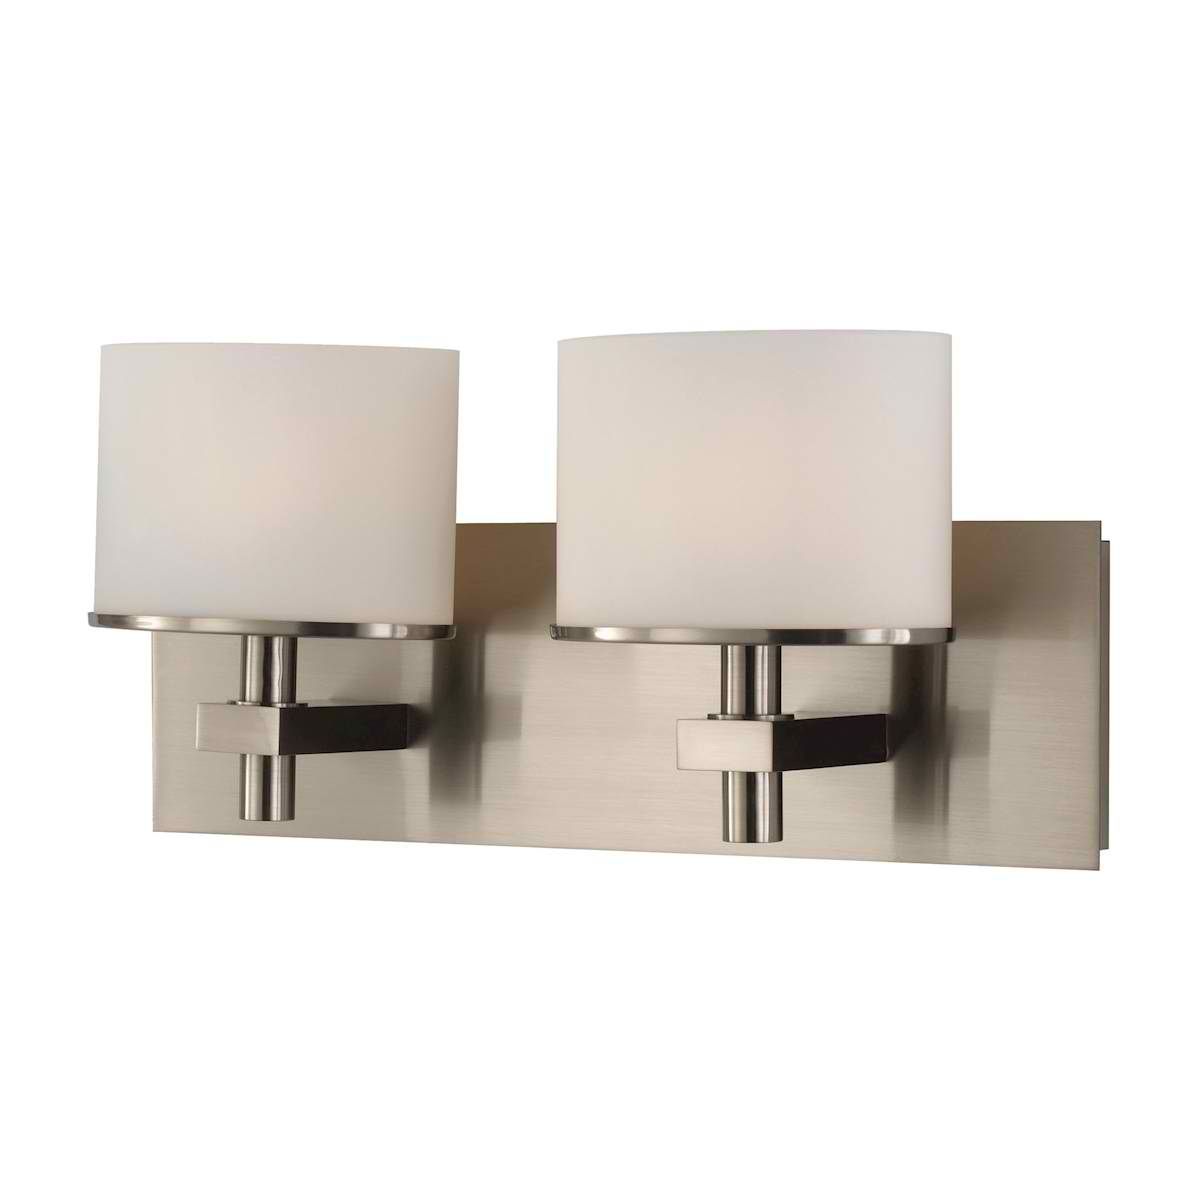 Ombra Vanity - 2 Light with Lamp White Opal Glass / Satin Nickel